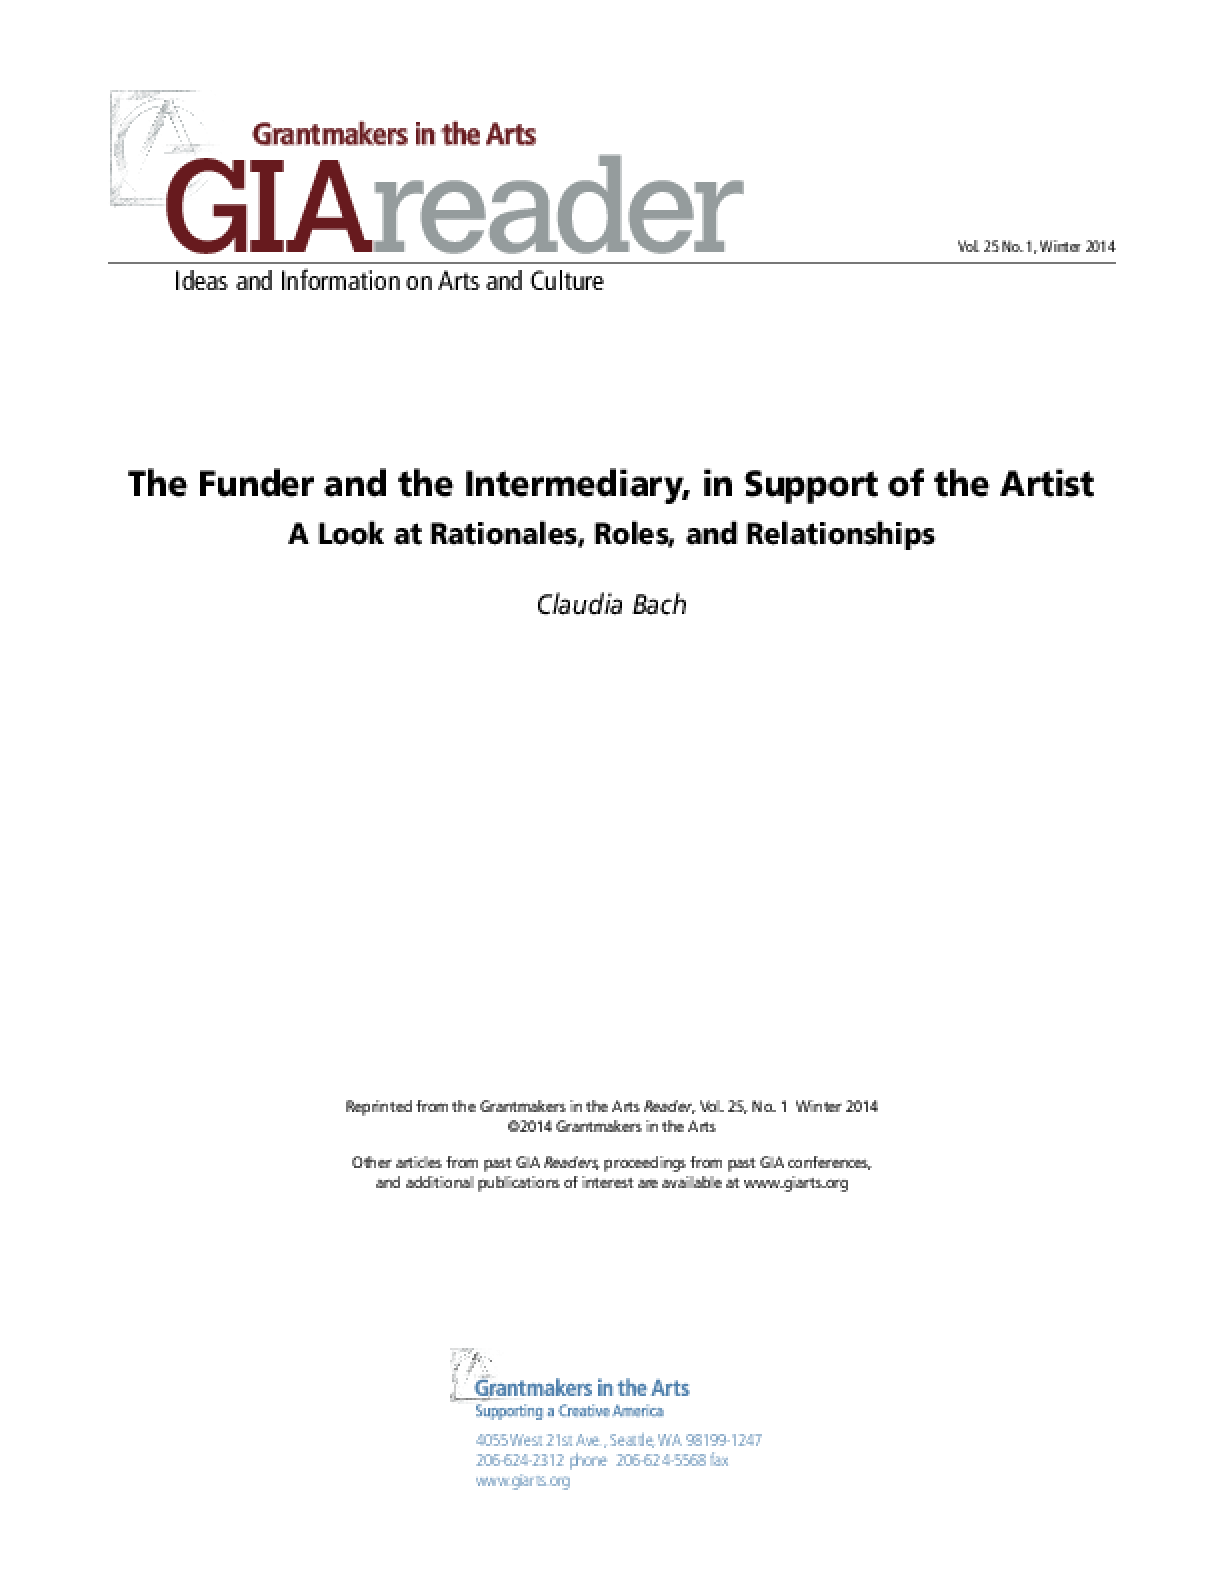 The Funder and the Intermediary, in Support of the Artist: A Look at Rationales, Roles, and Relationships